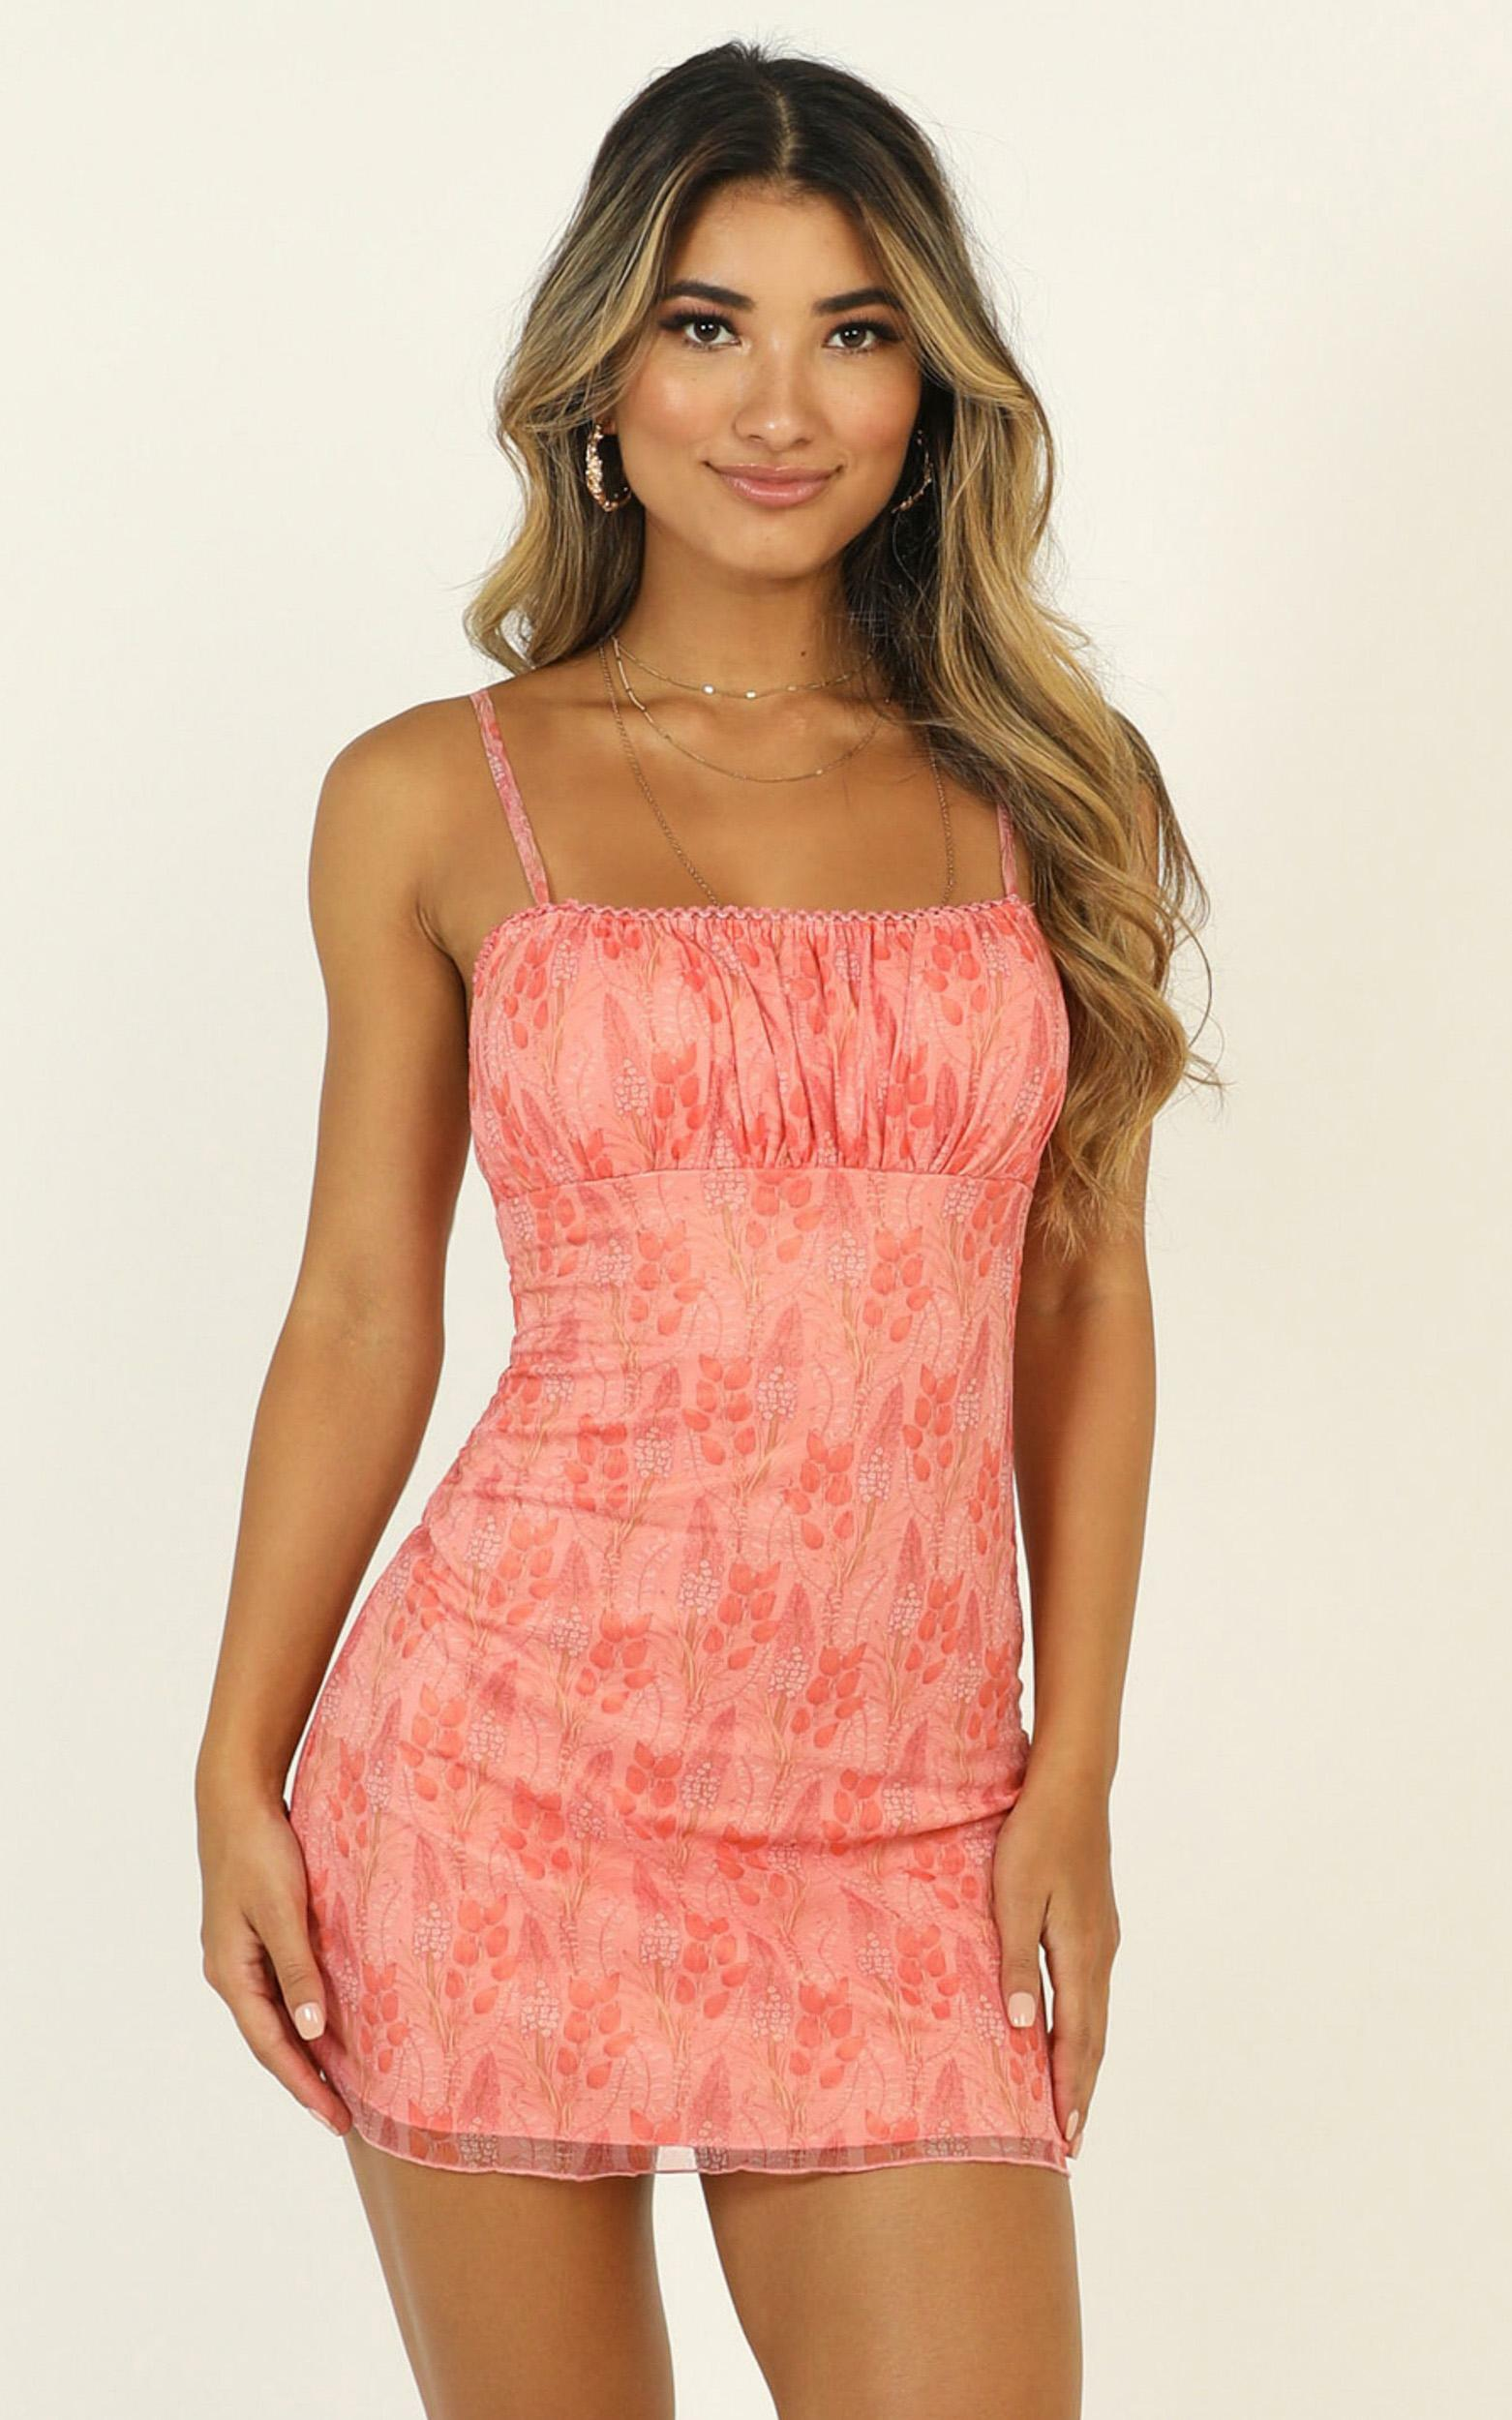 Walls Caving In Dress in Peach Print - 06, PNK1, hi-res image number null